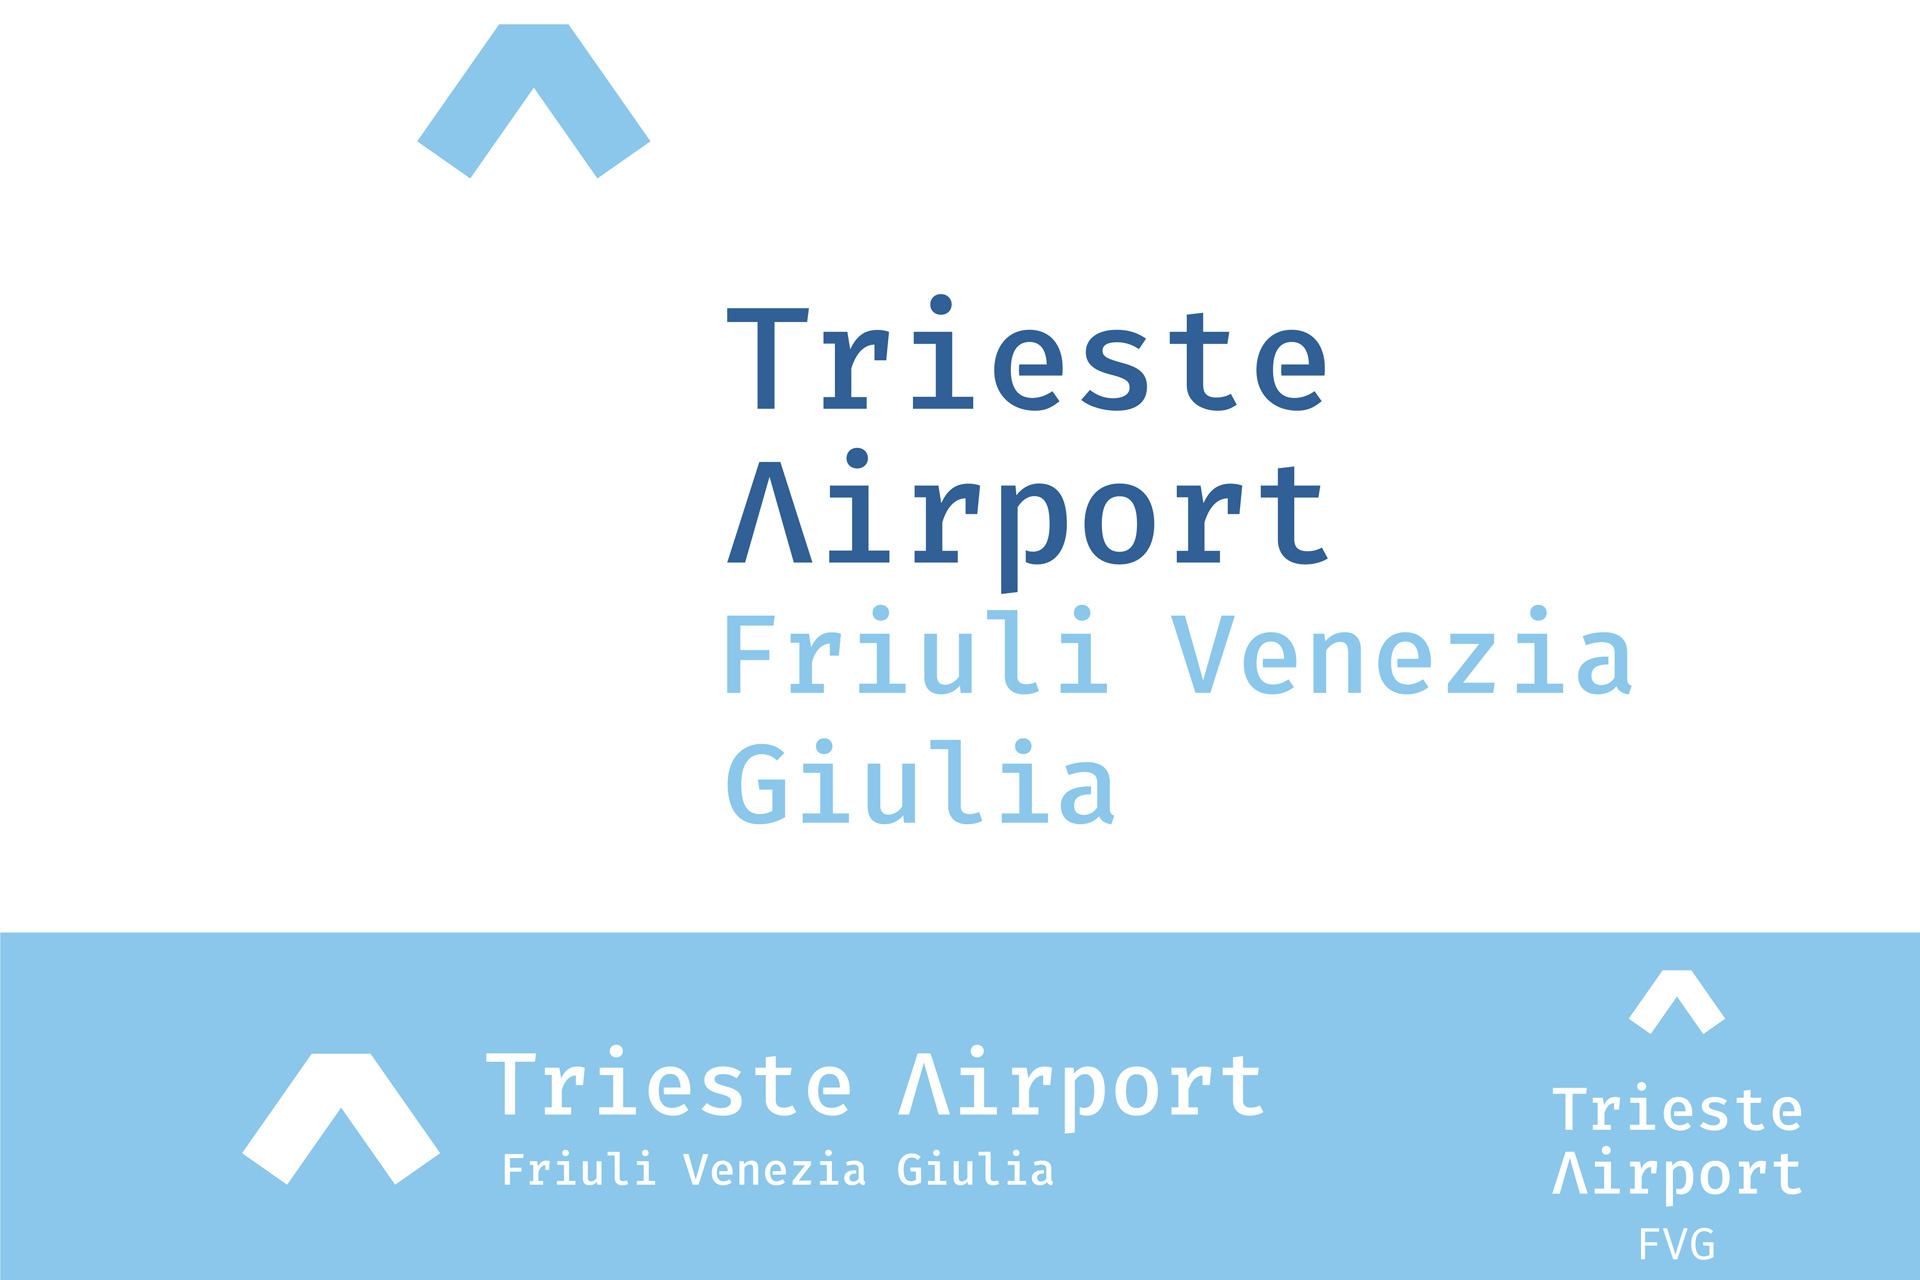 Trieste airport signage wayfinding on behance monicamarmolfo Image collections